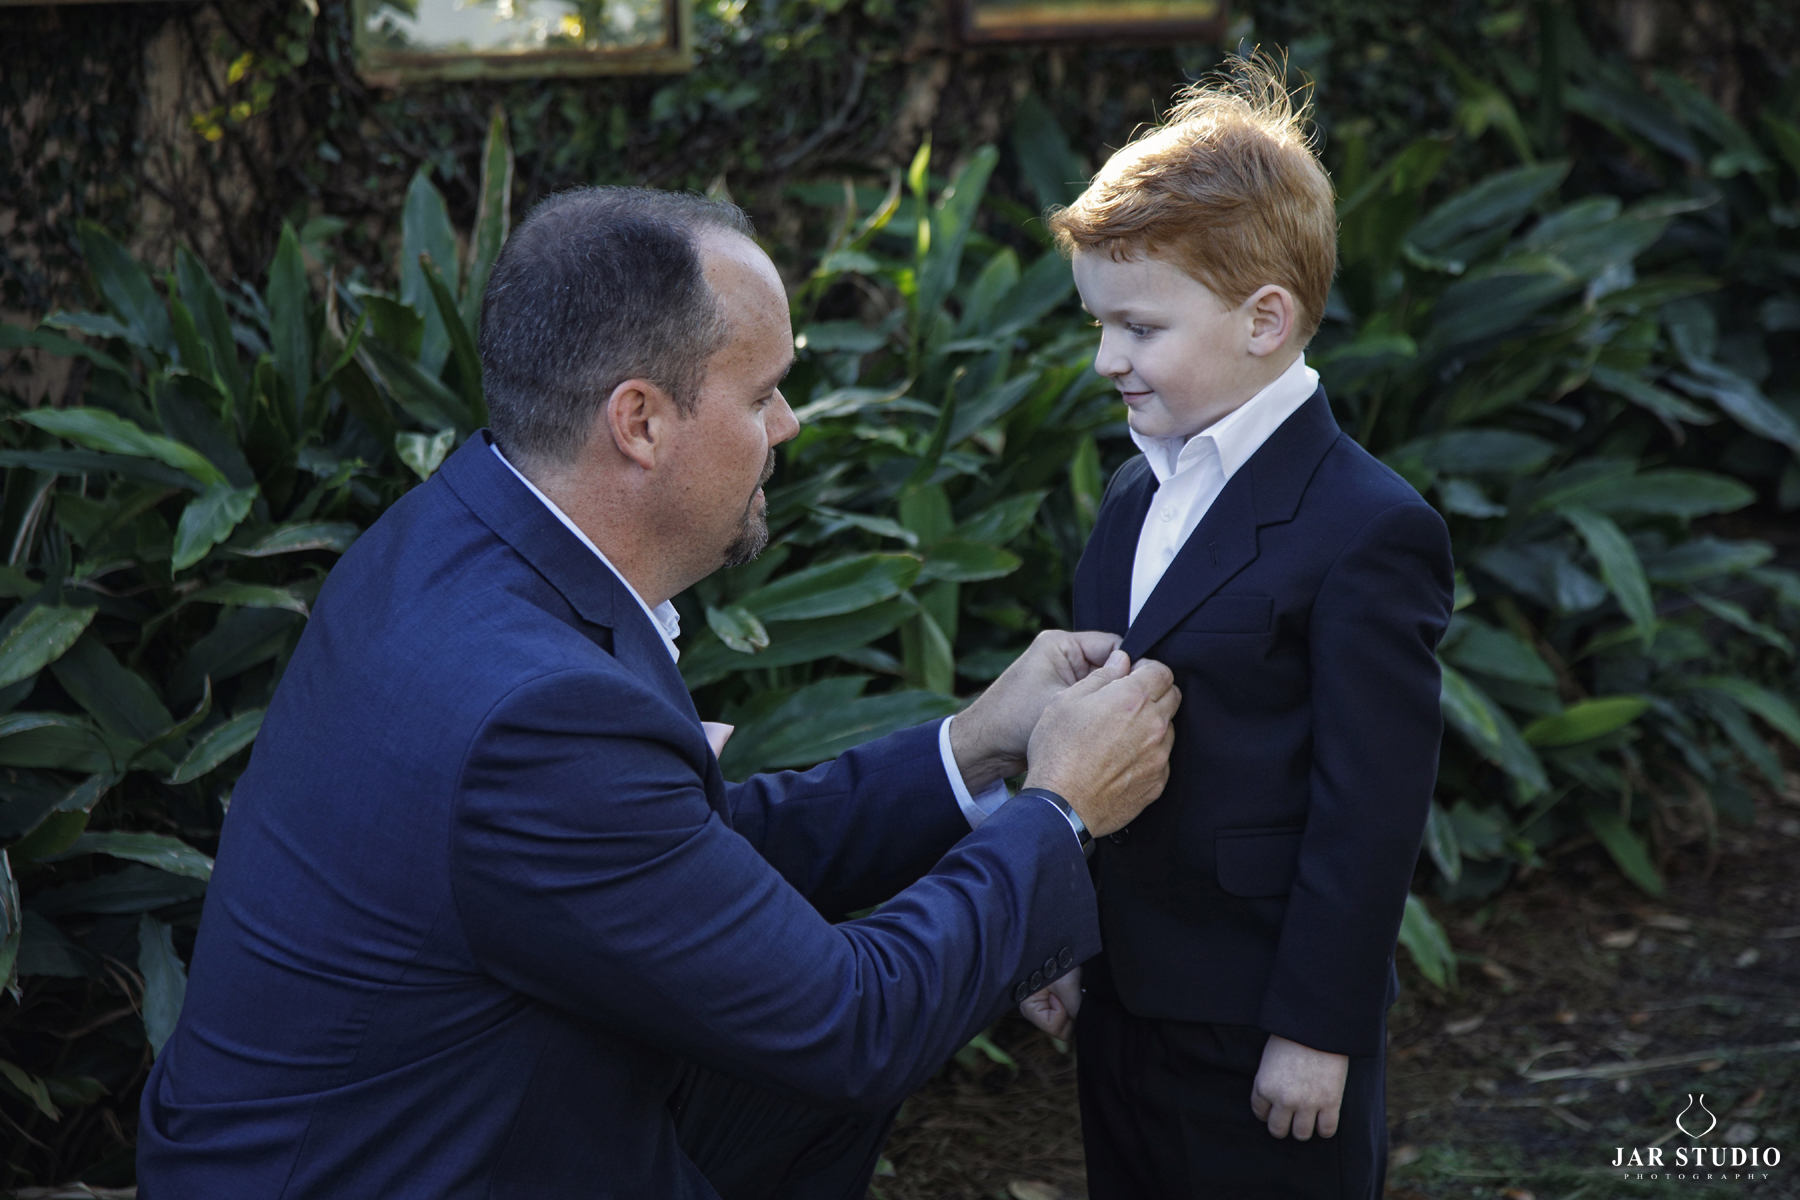 05-groom-and-son-ideas-jarstudio-photography.JPG